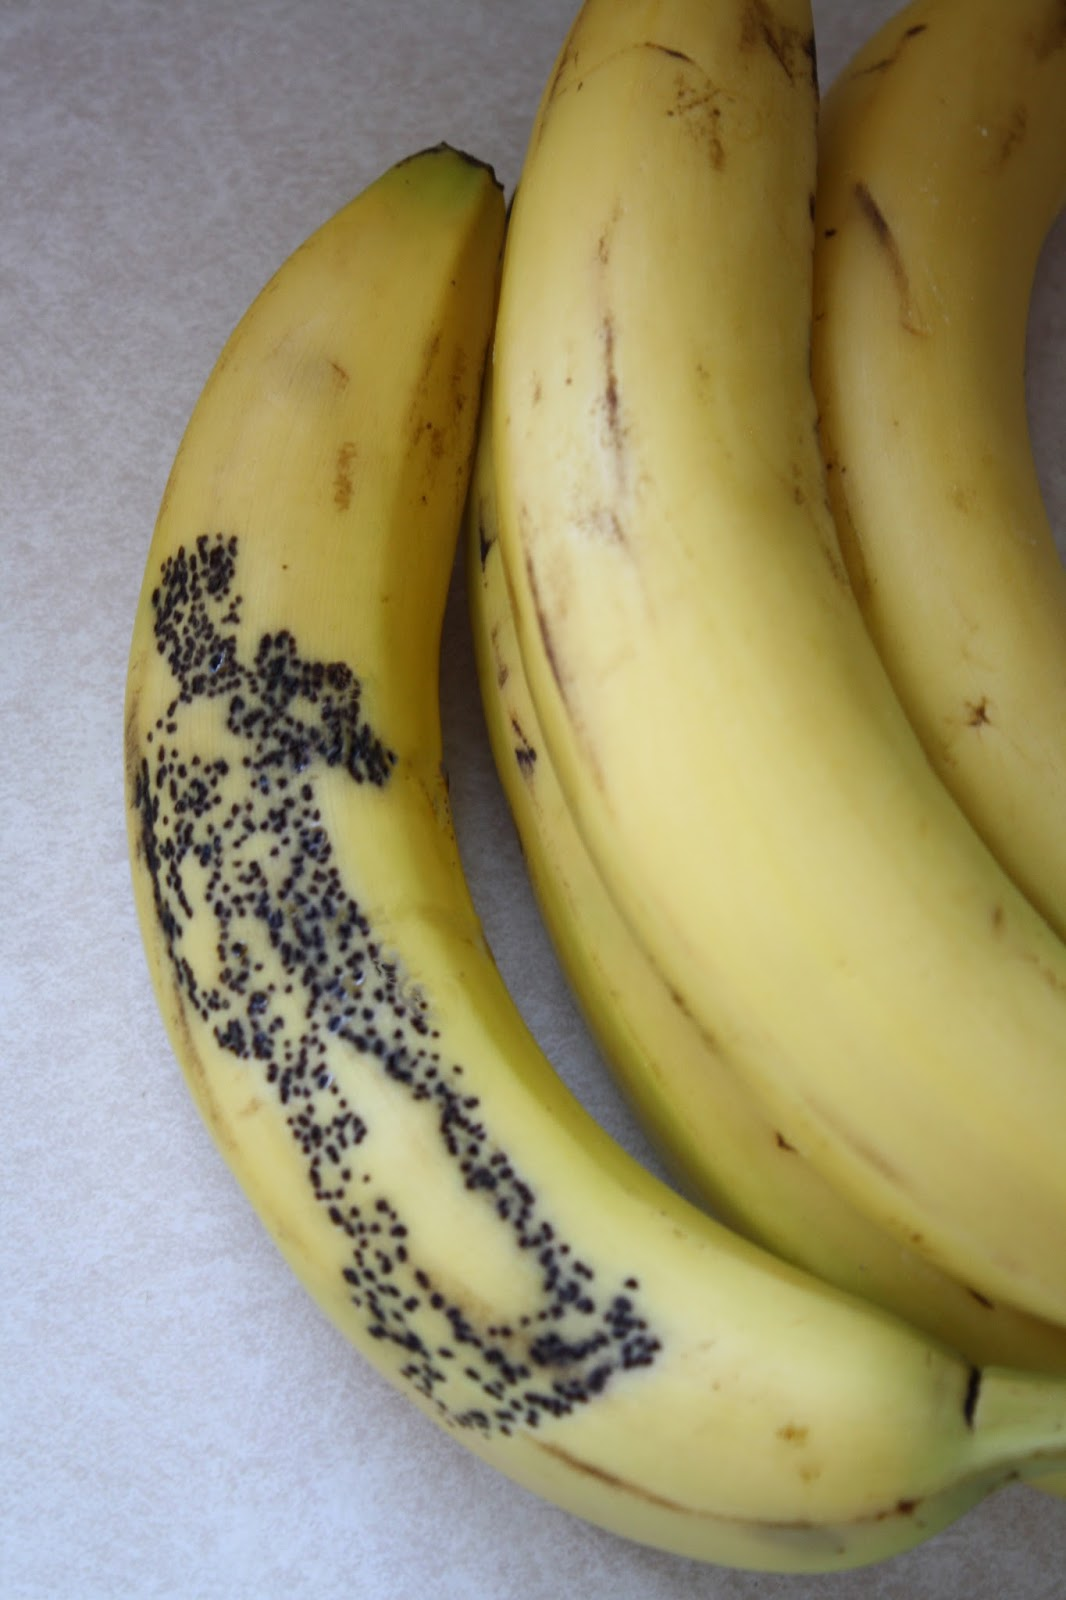 Funny Banana Display Pictures